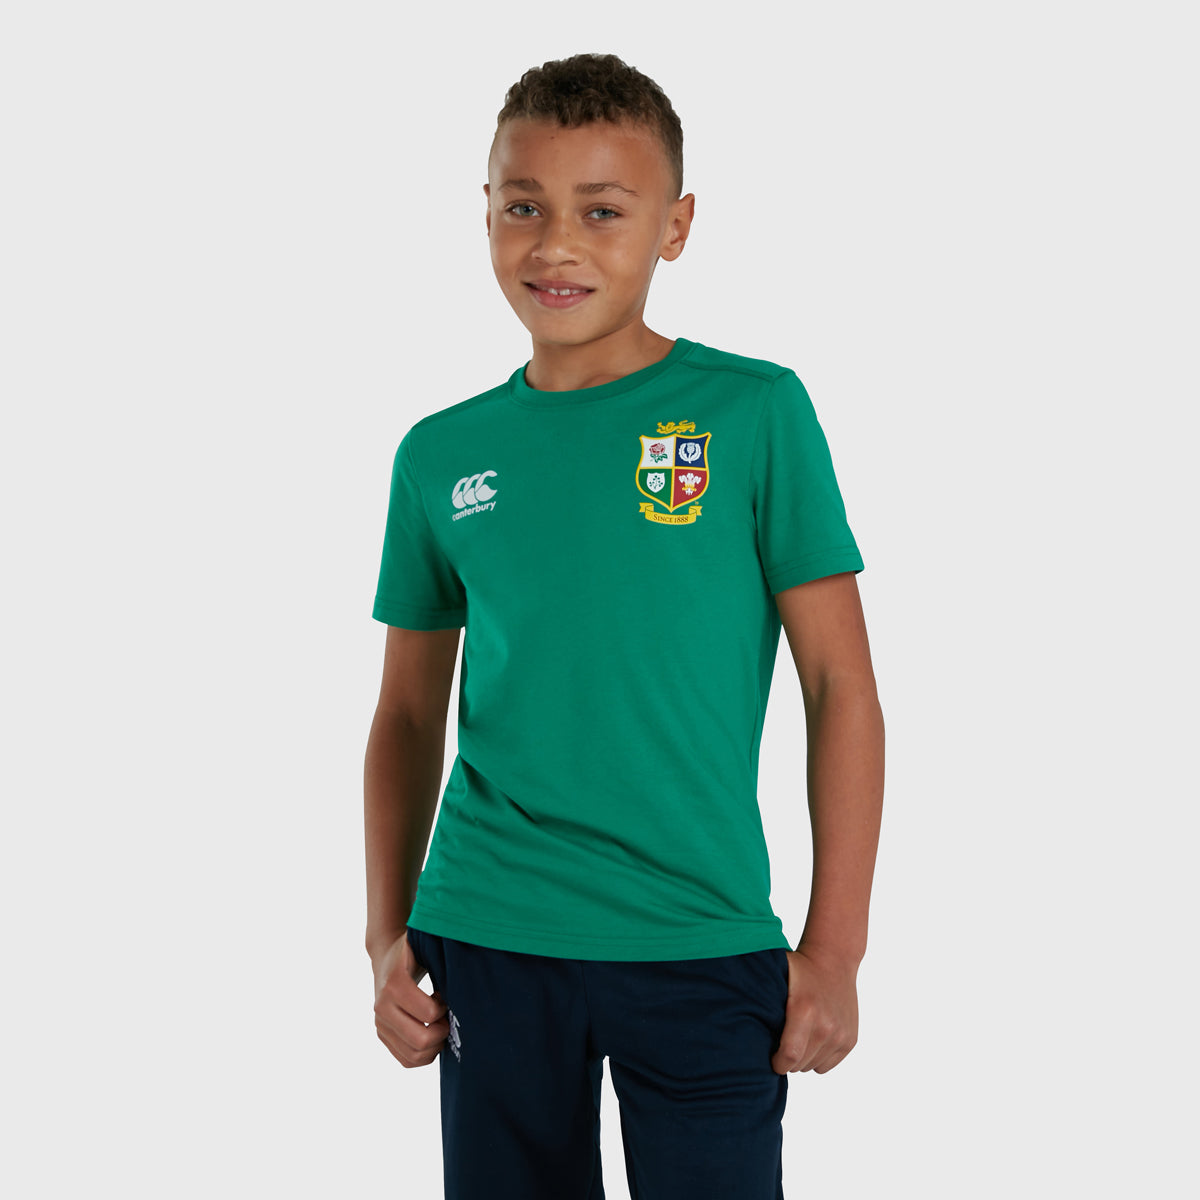 British & Irish Lions SA 2021 Kid's Cotton Tee Green